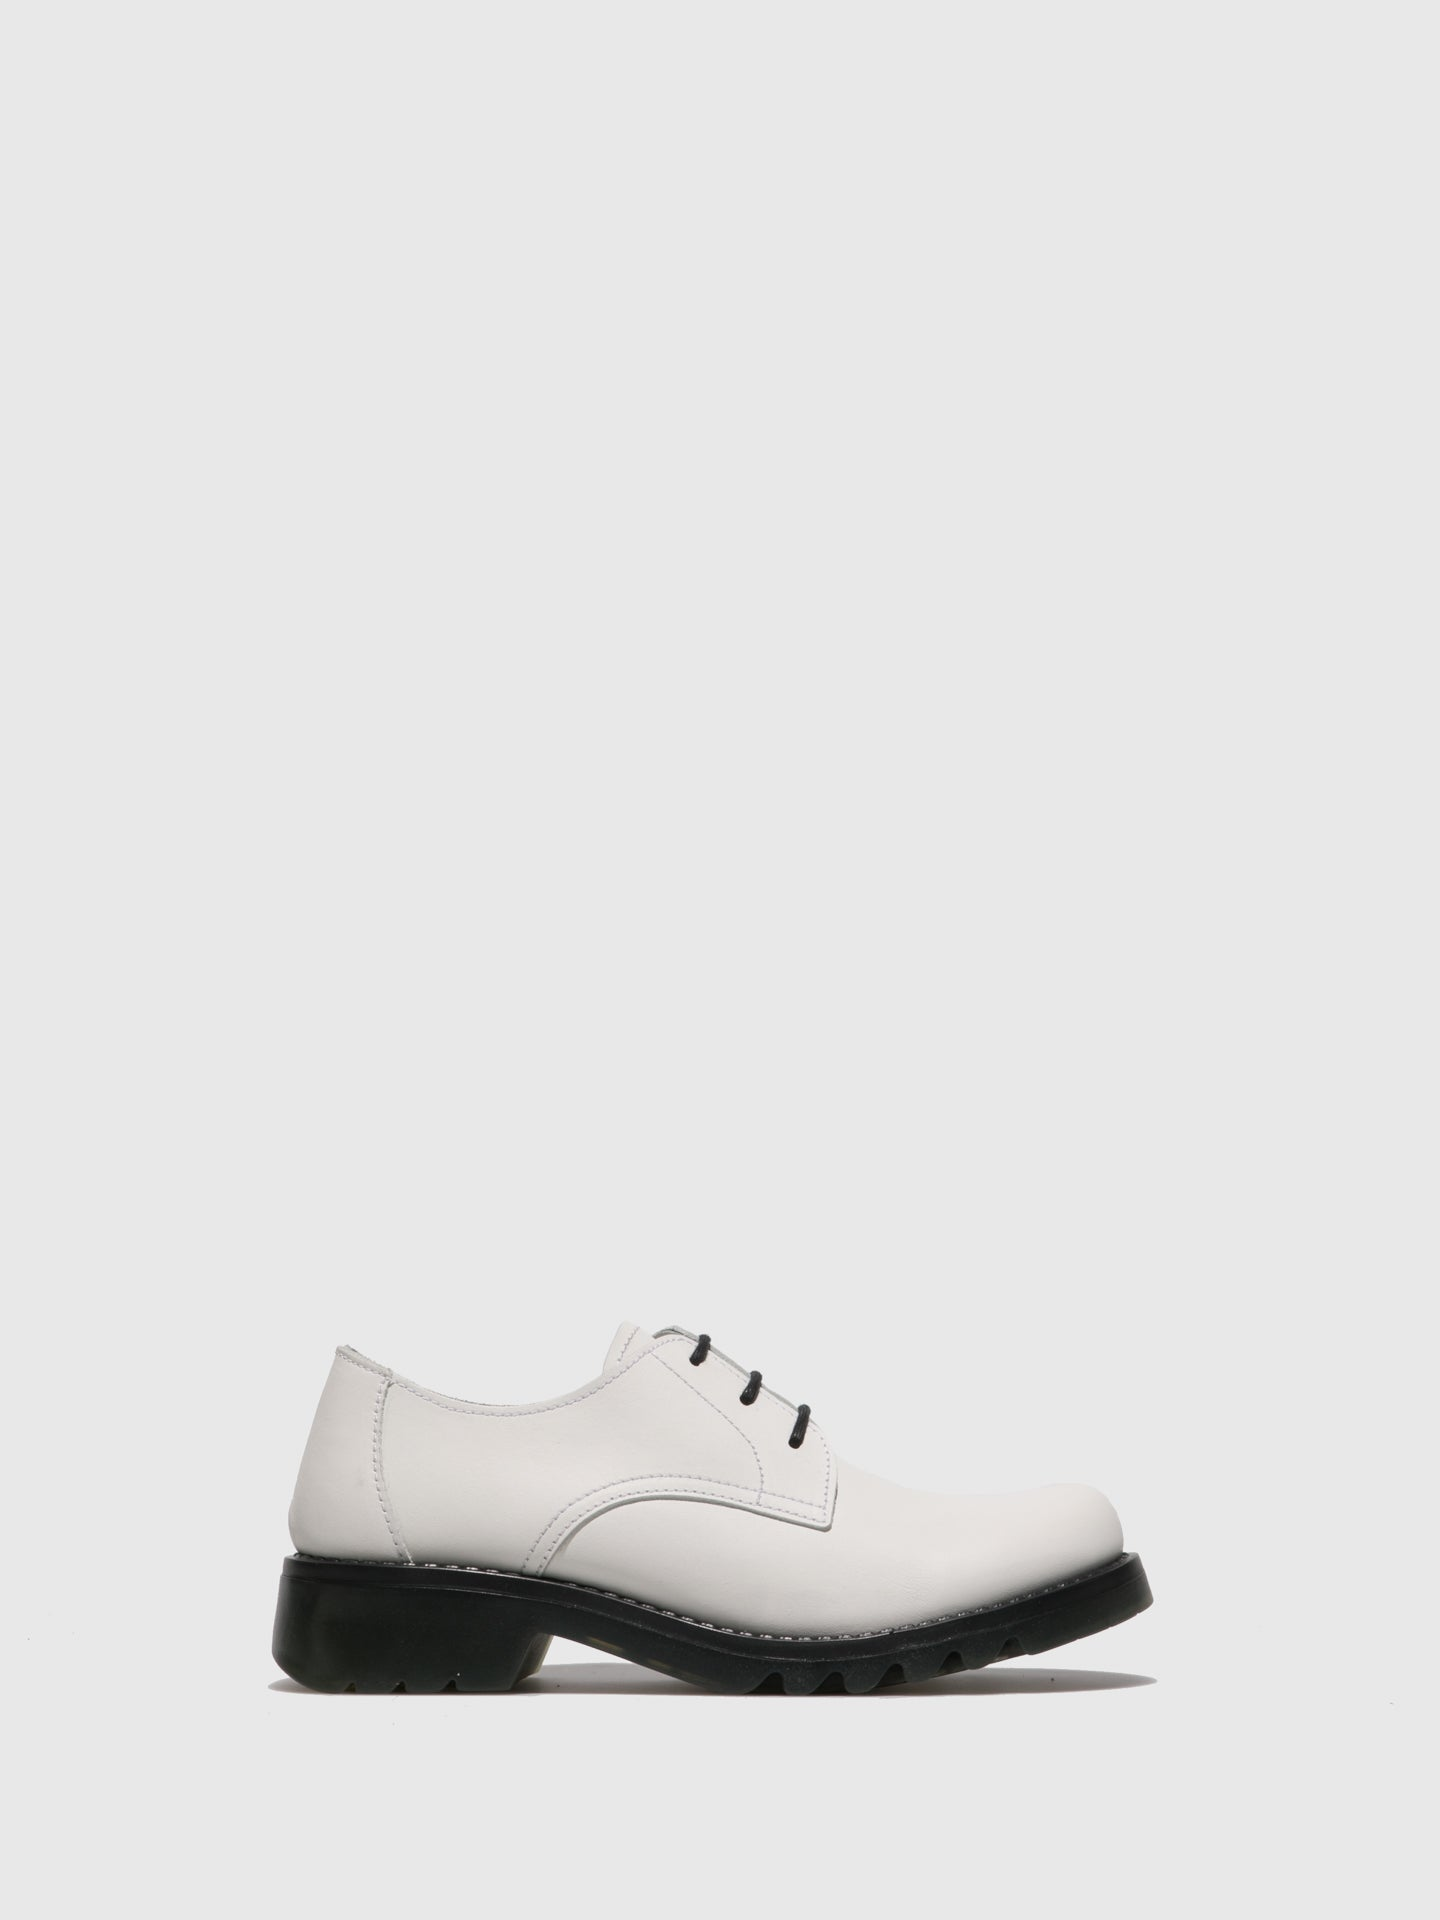 Fly London White Lace-up Shoes